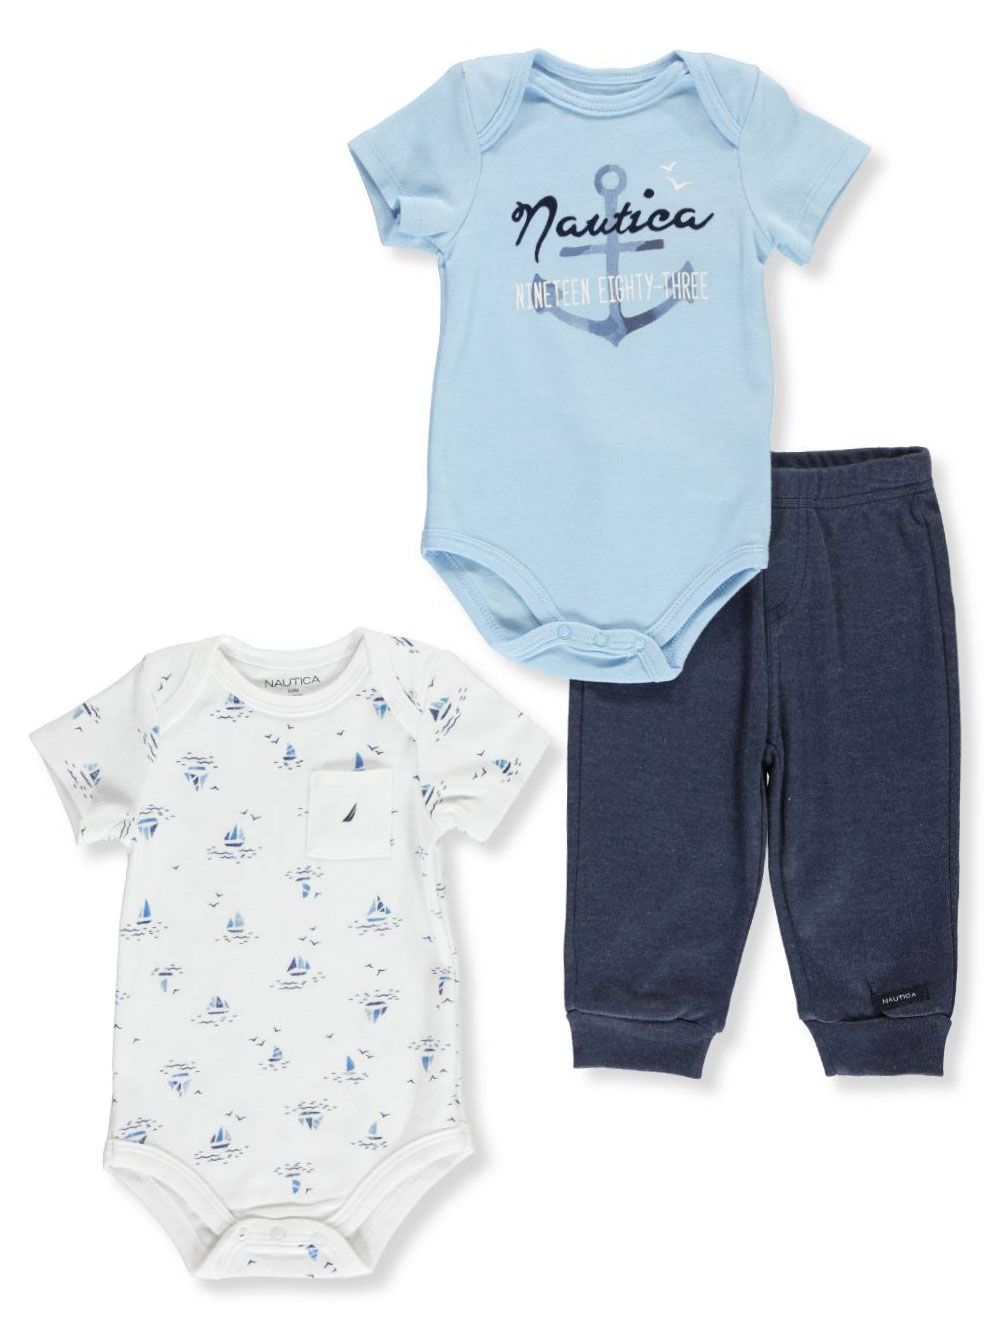 Baby boys striped t-shirt shorts printed appliqued embroidered caterpillar set